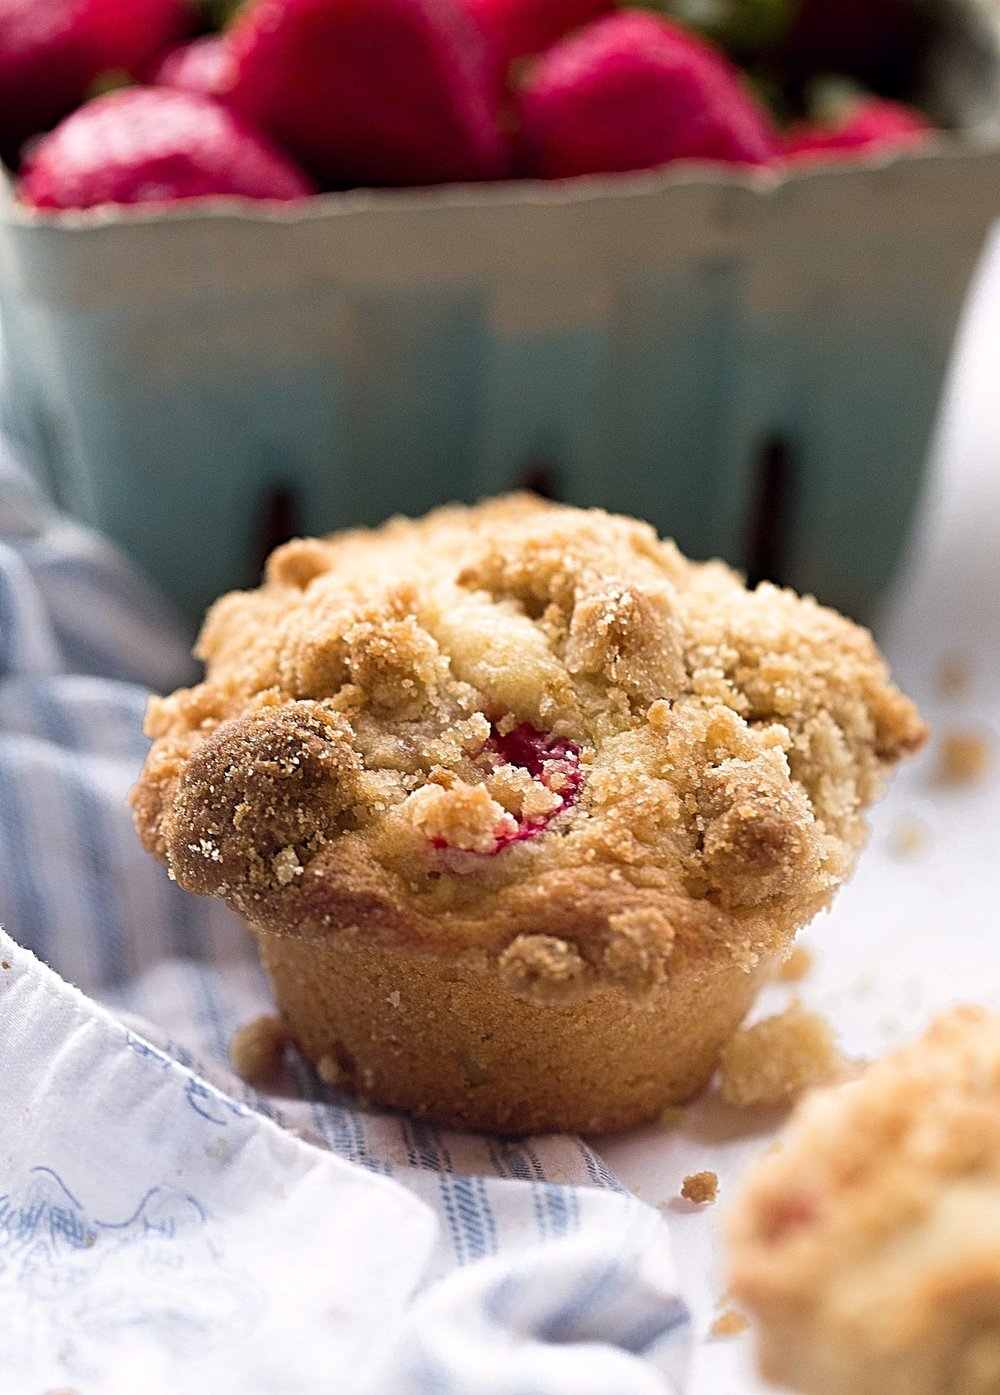 Fluffy Strawberry Crumb Muffins: light, soft, moist muffins filled with fresh strawberries and topped with a tasty crumble. Valentine's Day perfection. | TrufflesandTrends.com